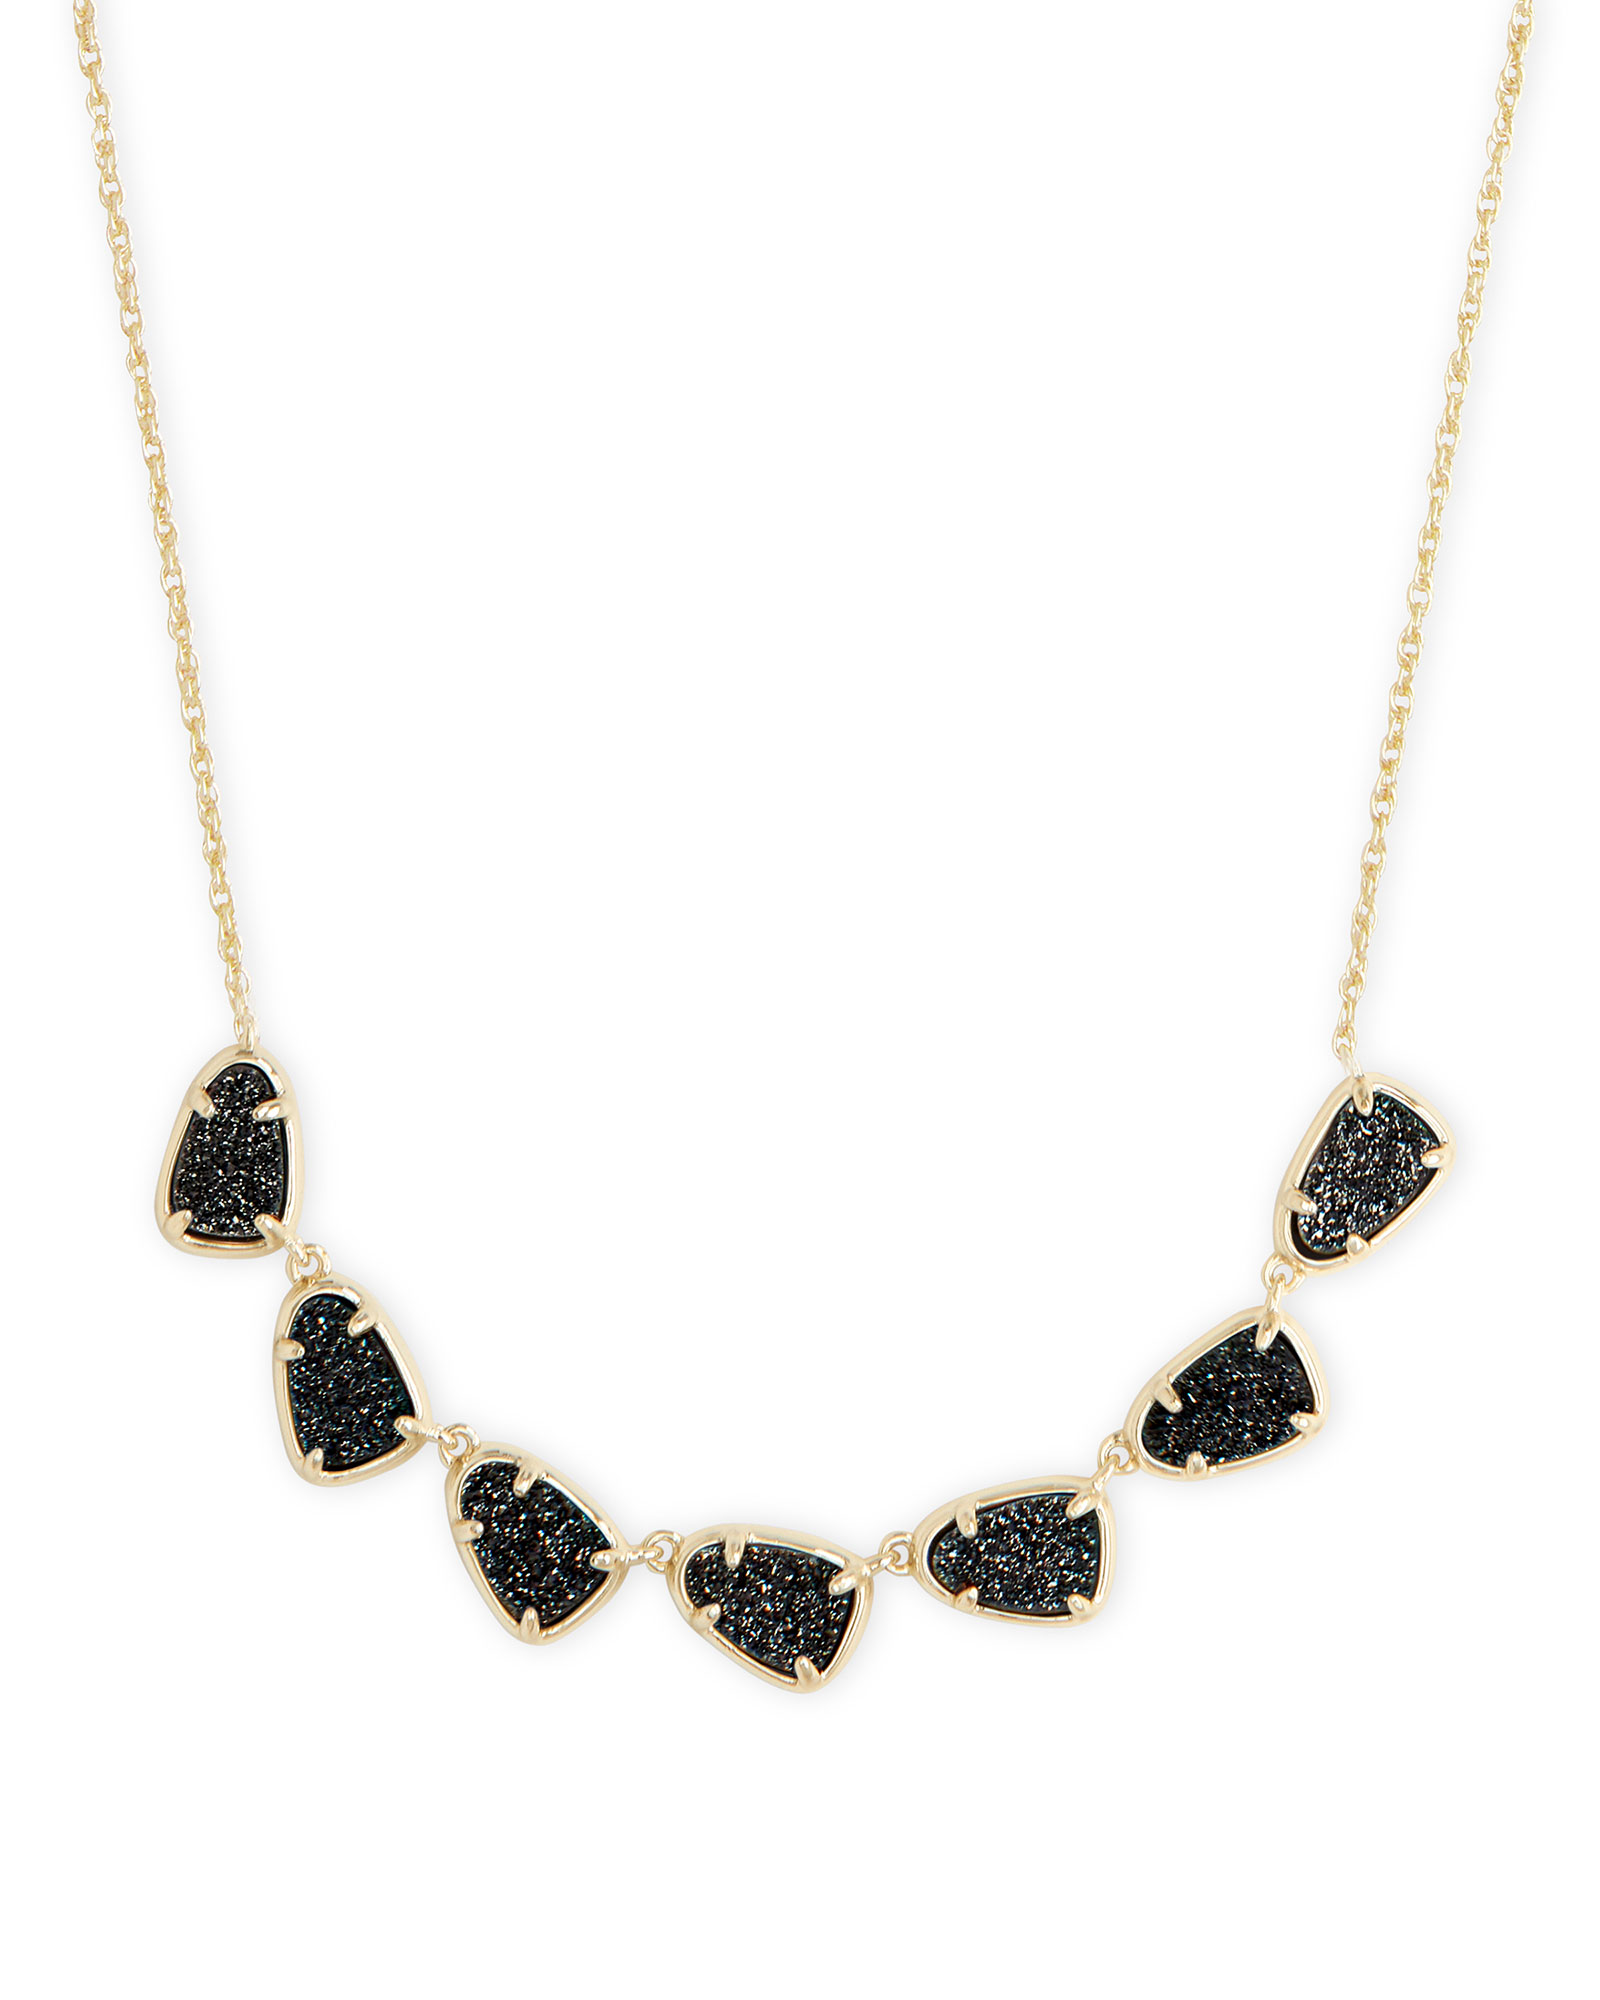 Susanna Gold Collar Necklace in Black Drusy